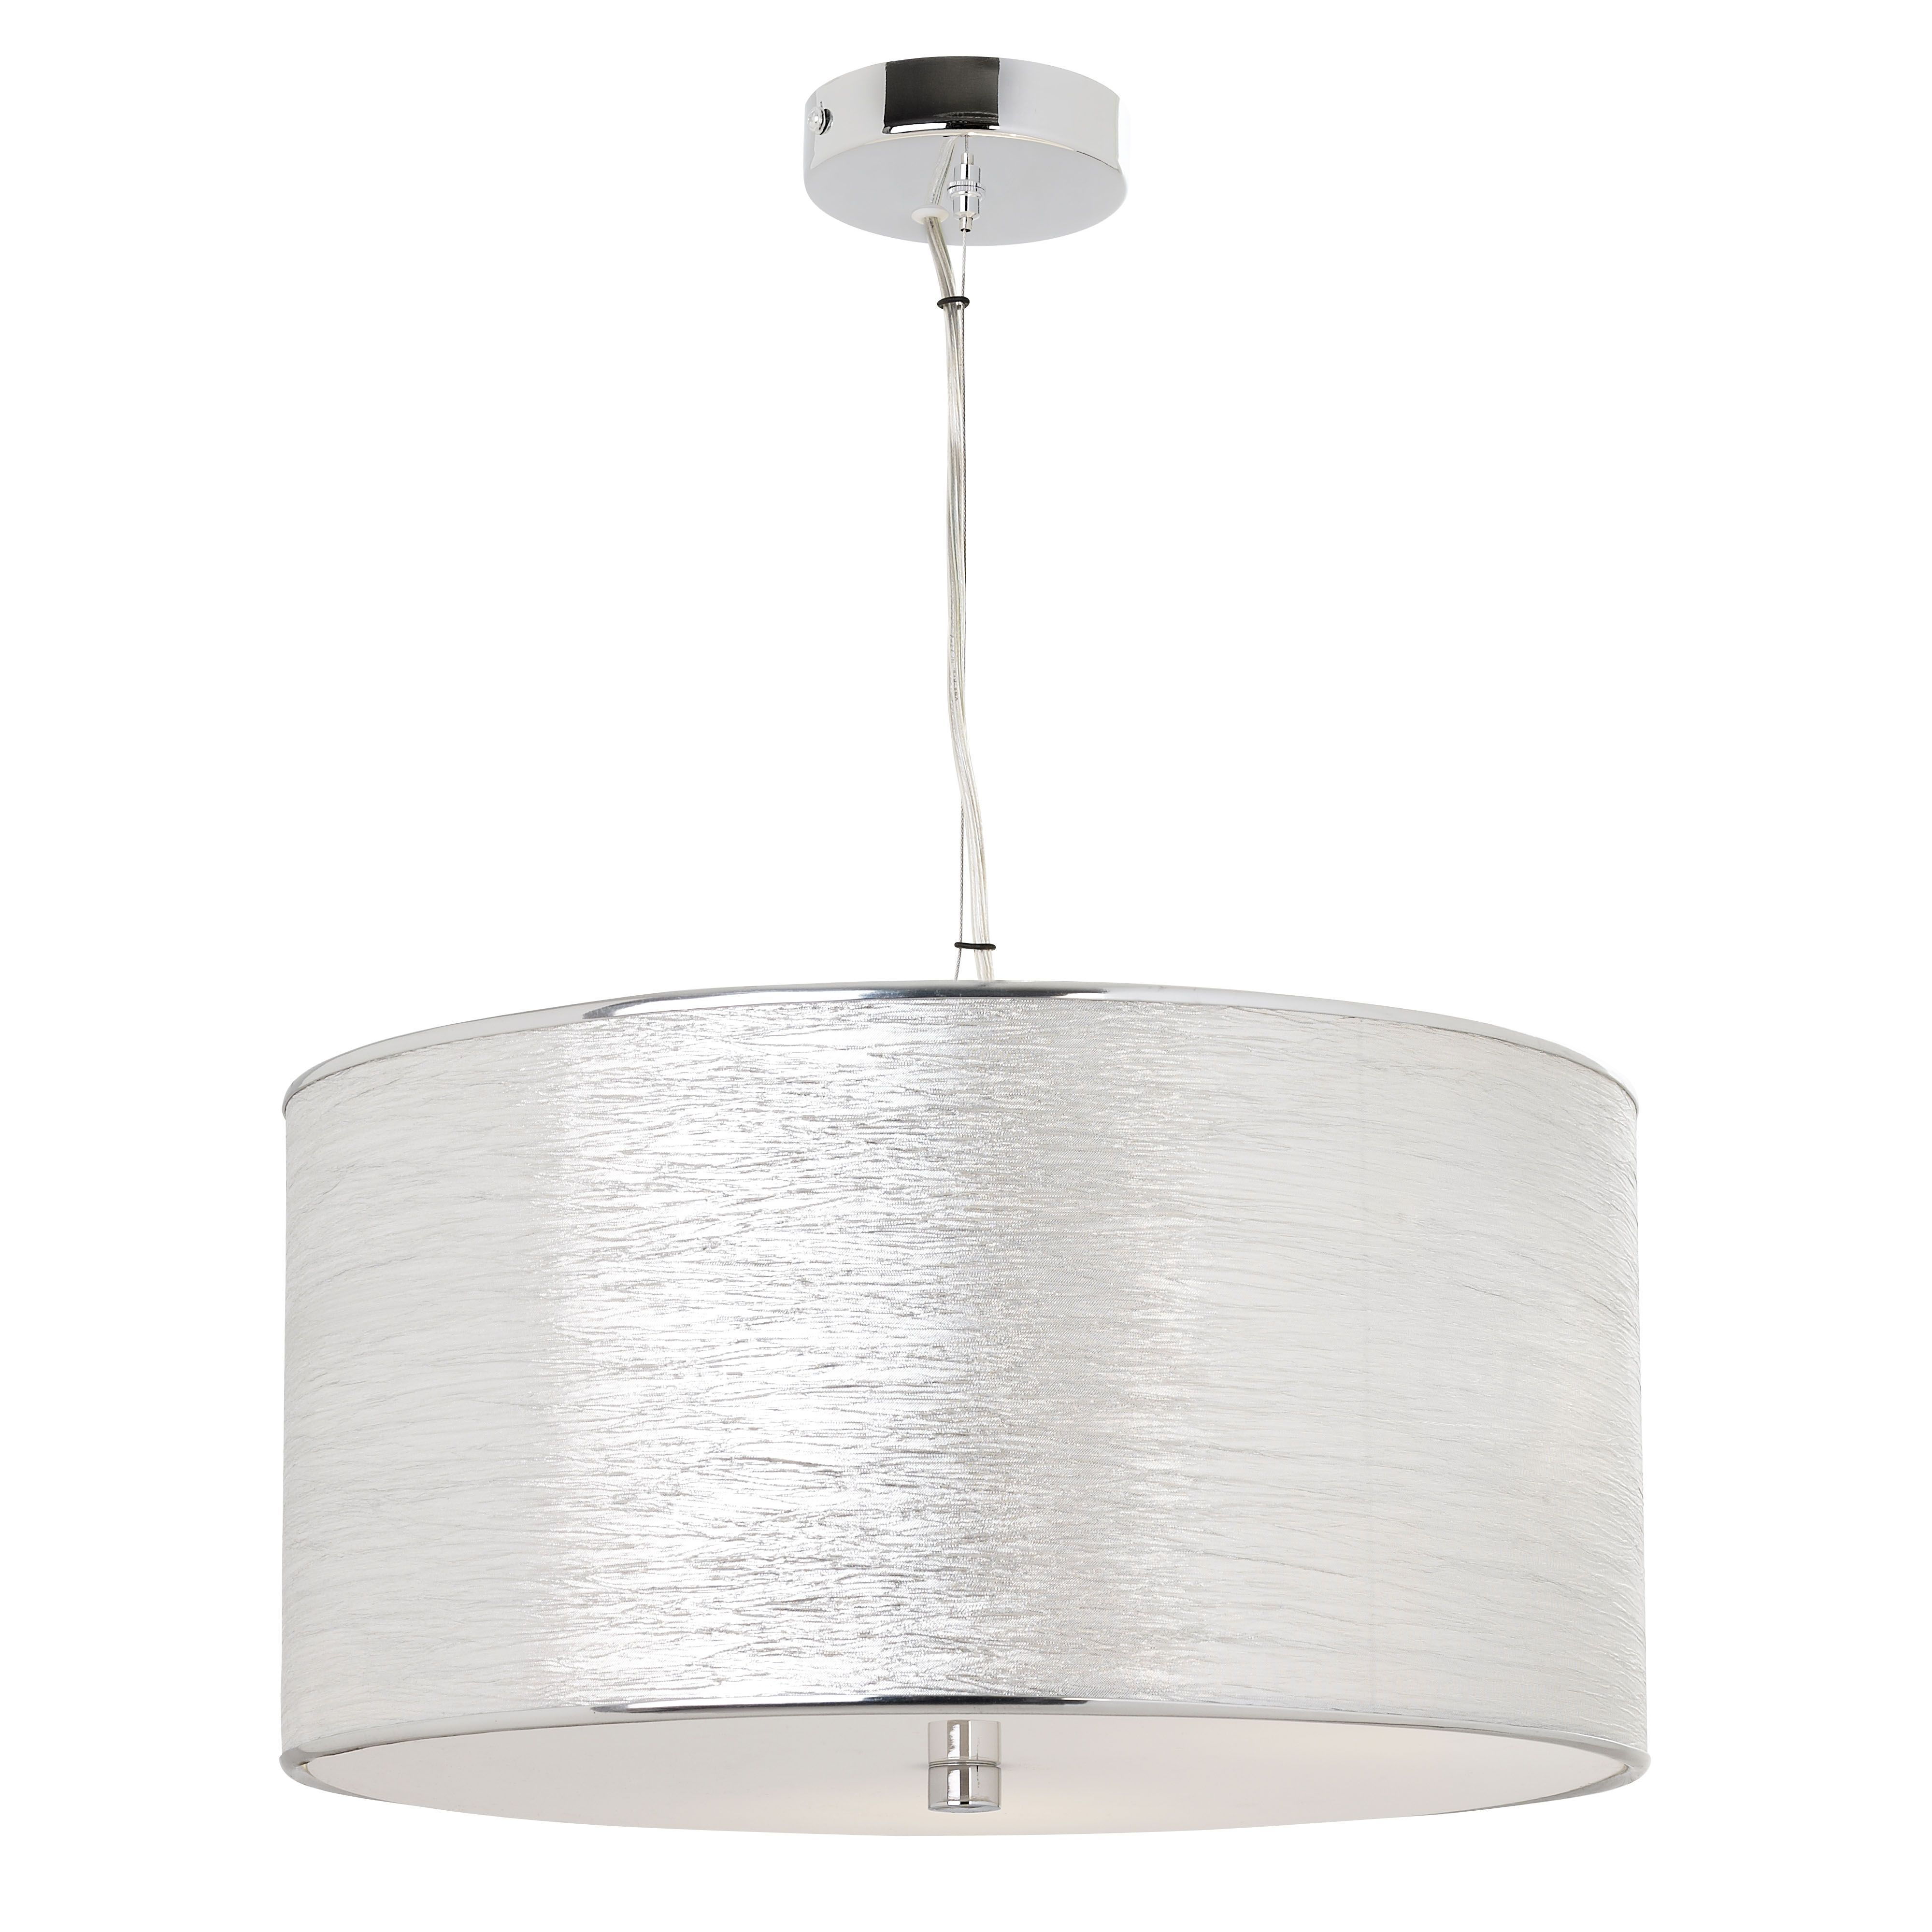 3 Light Pendant In Chrome With Fabric Shade Acrylic